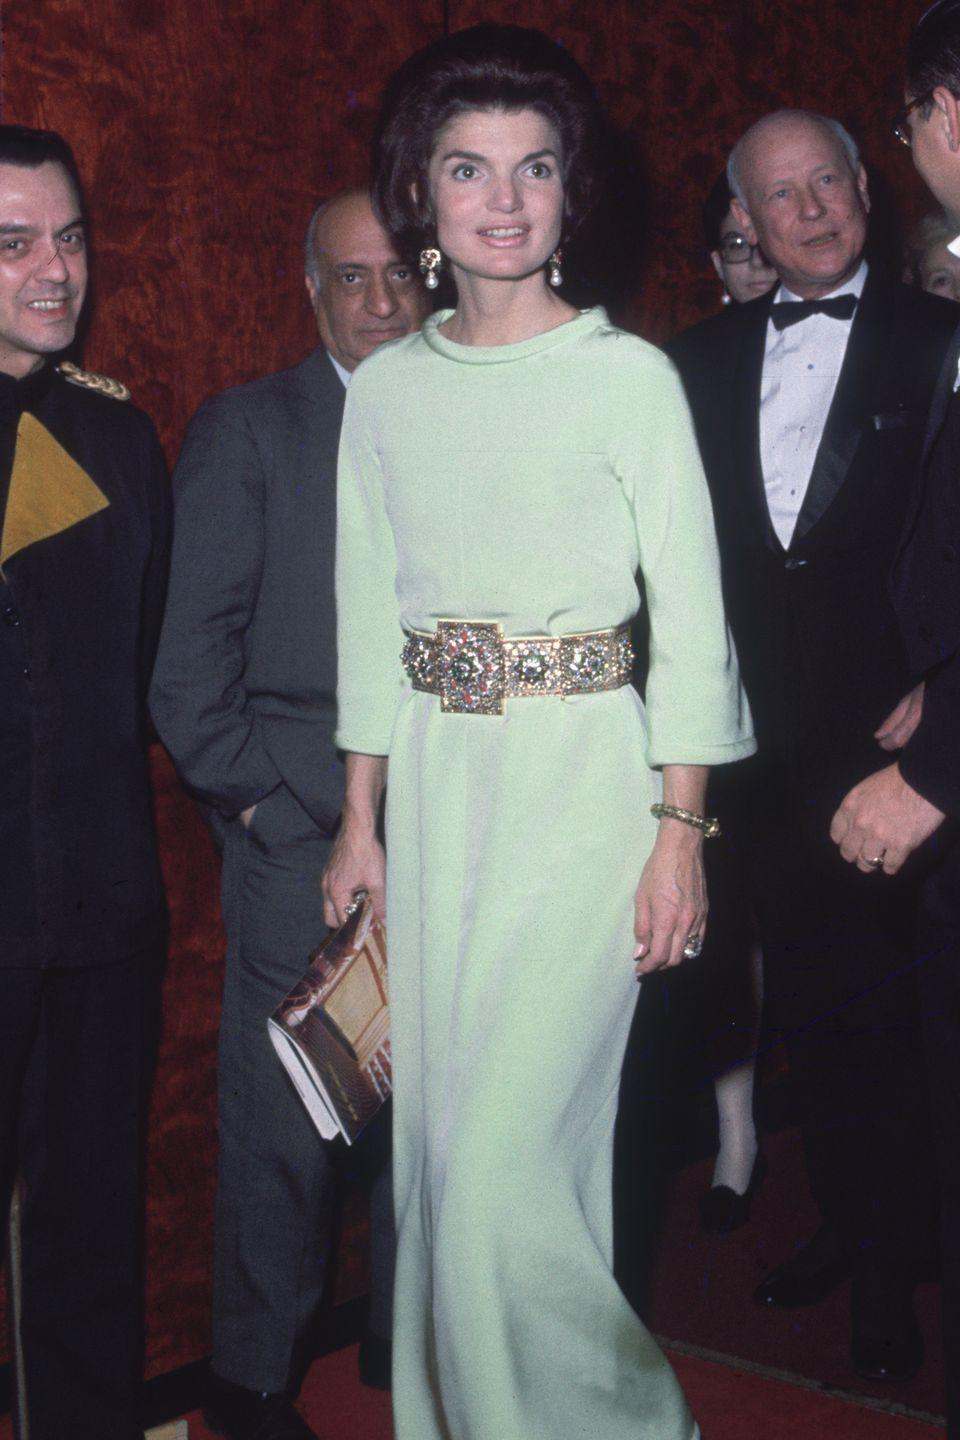 <p>As we head into the late '60s, Kennedy begins to embrace longer, leaner silhouettes. This gilded belt lends major glamour factor to her mint gown.</p>